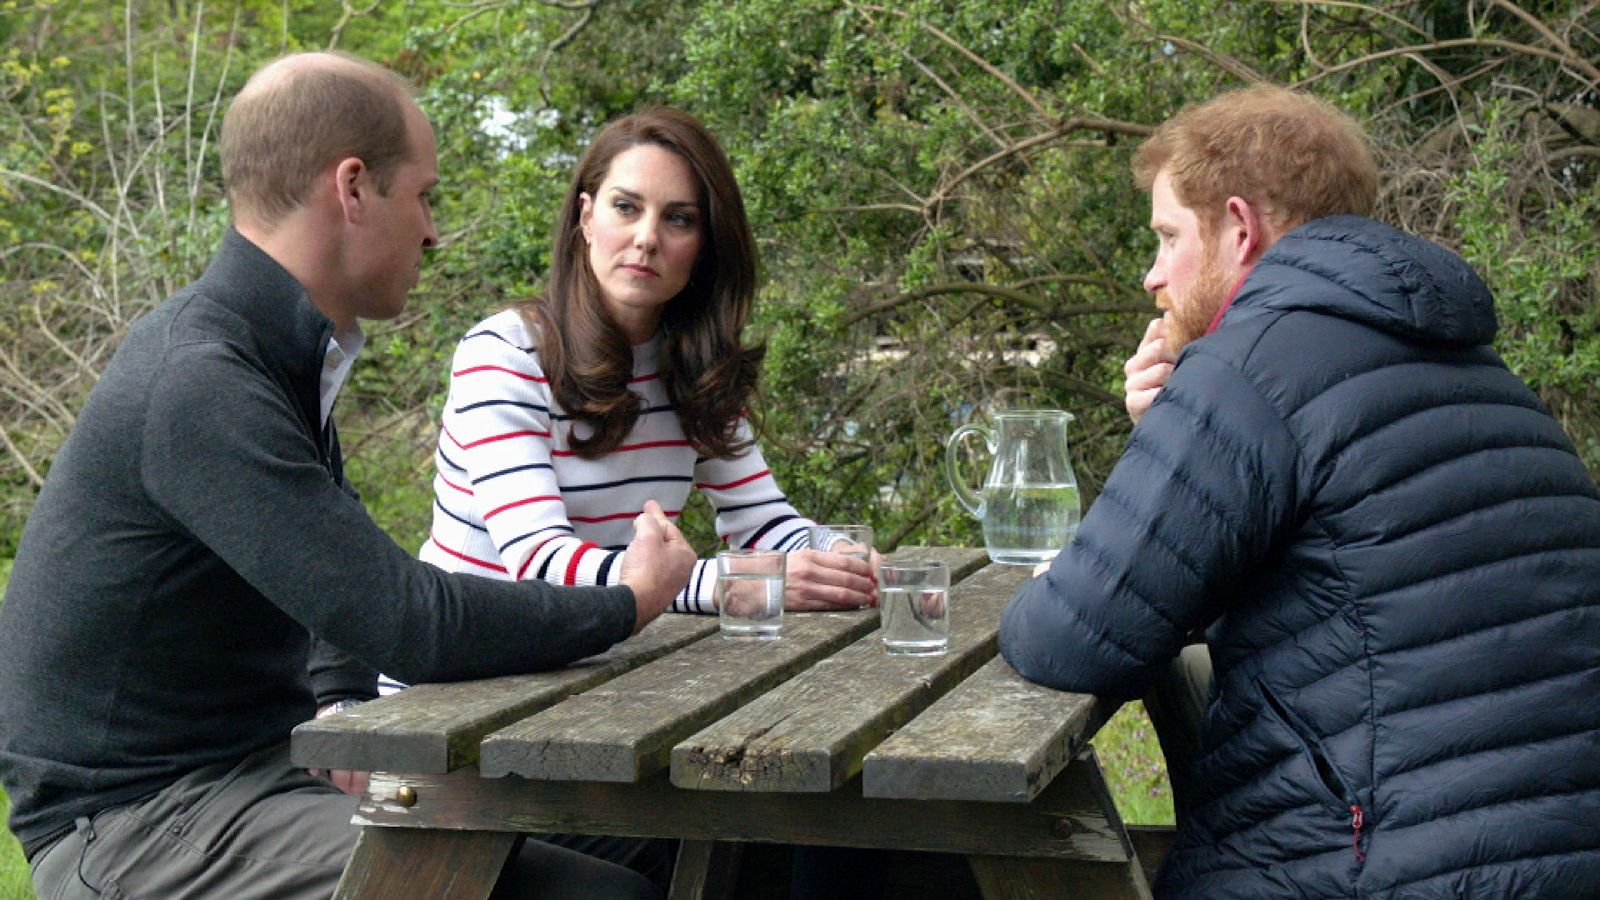 Prince William, Prince Harry and Kate